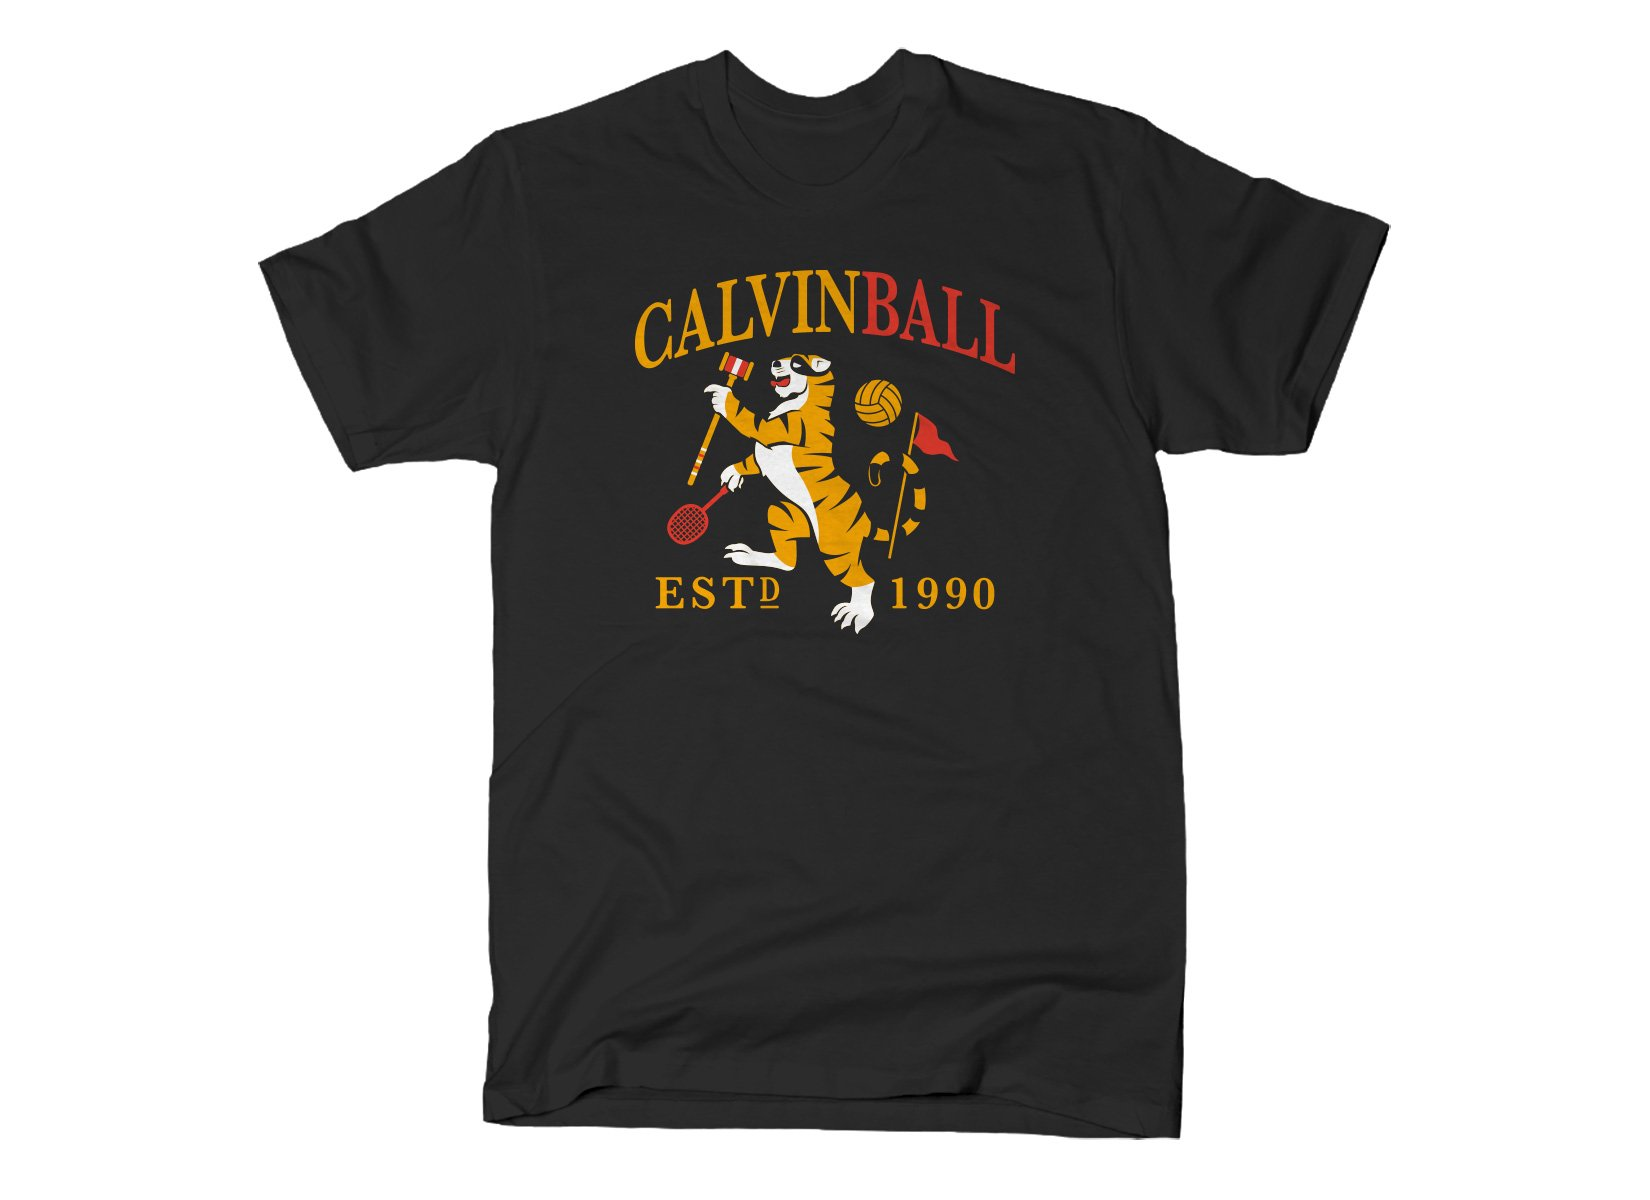 Calvinball on Mens T-Shirt